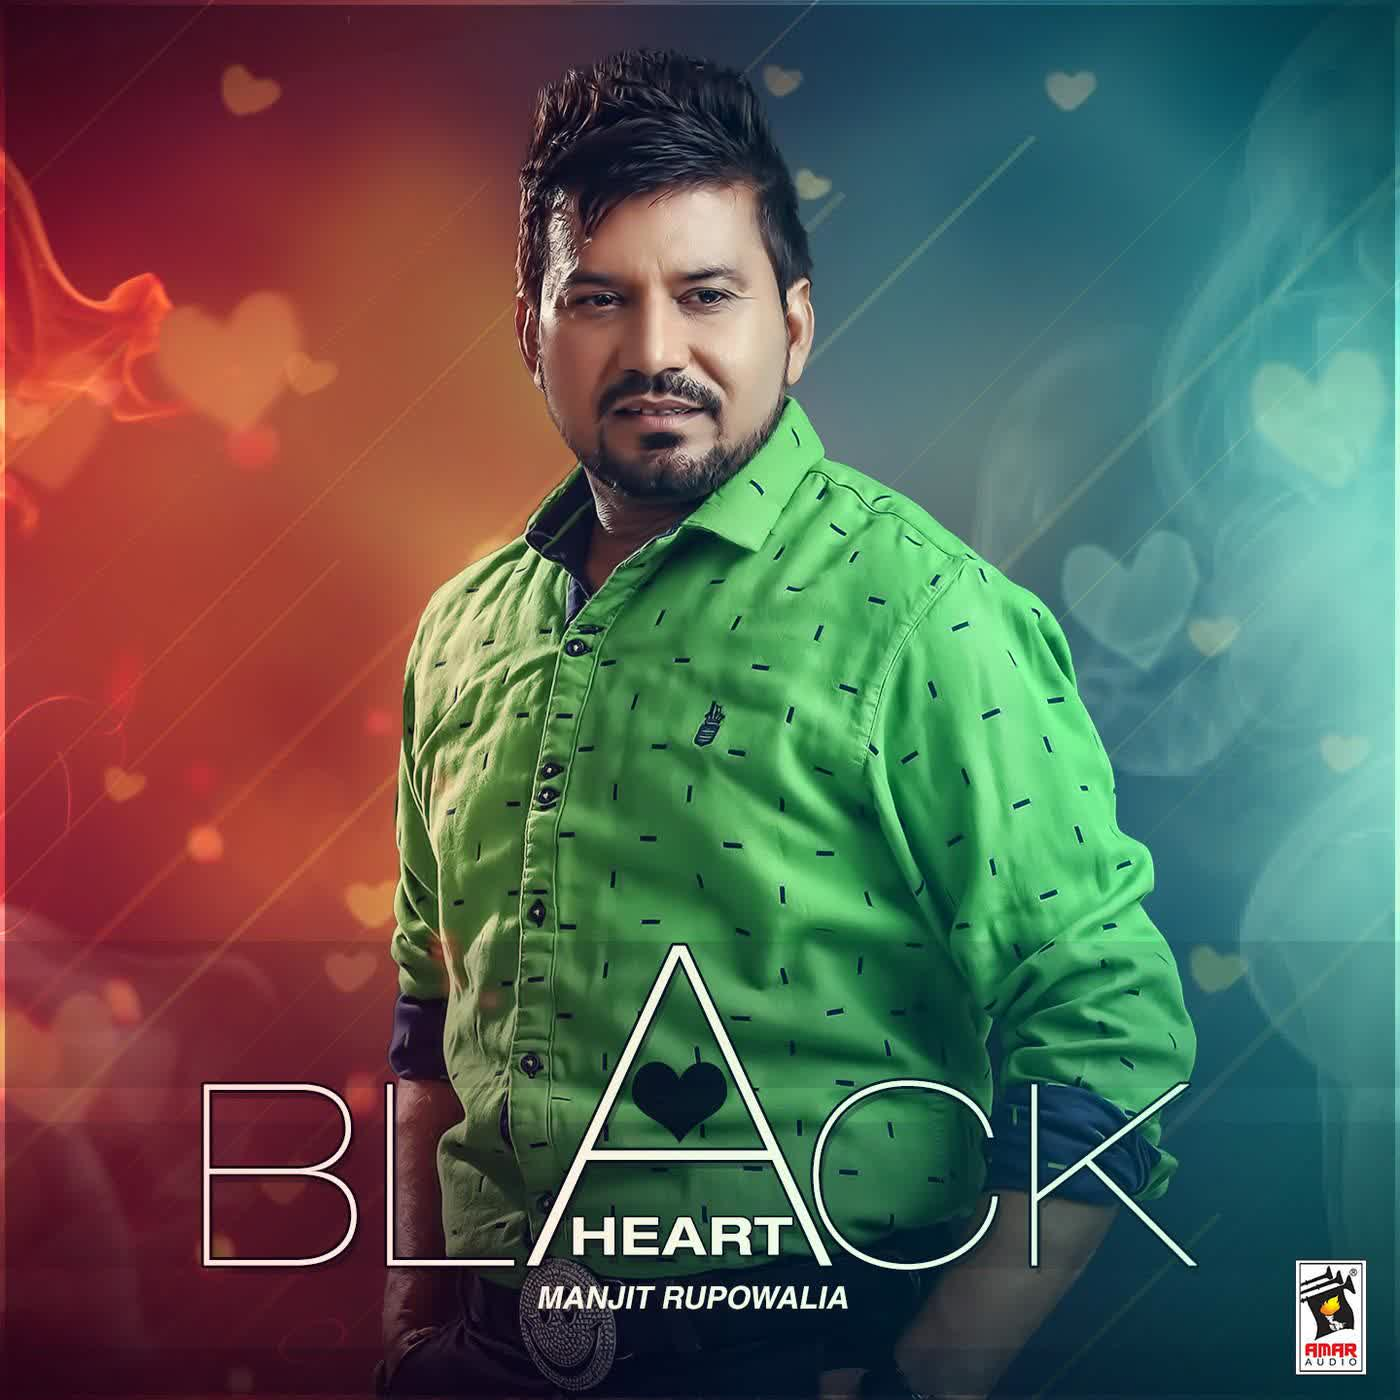 Black Heart Manjit Rupowalia Mp3 Song Djpunjab